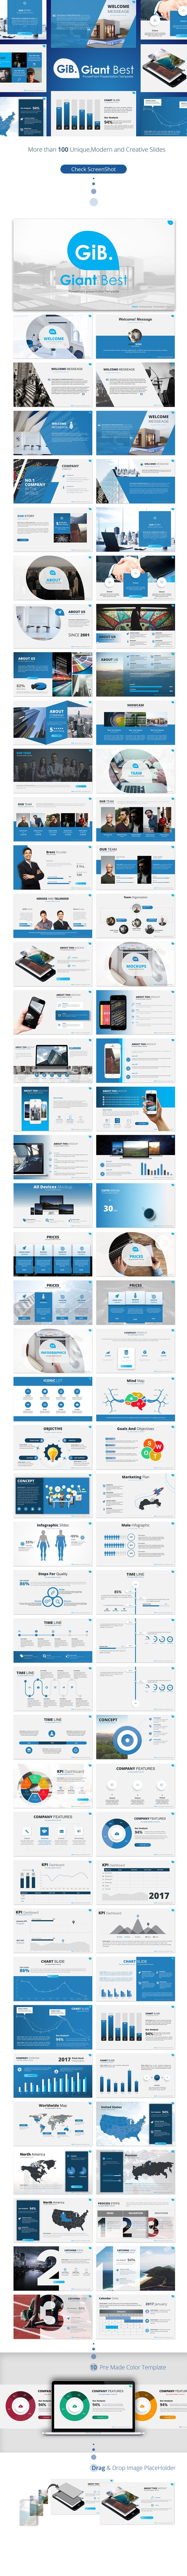 giant best powerpoint presentation template powerpoint templates